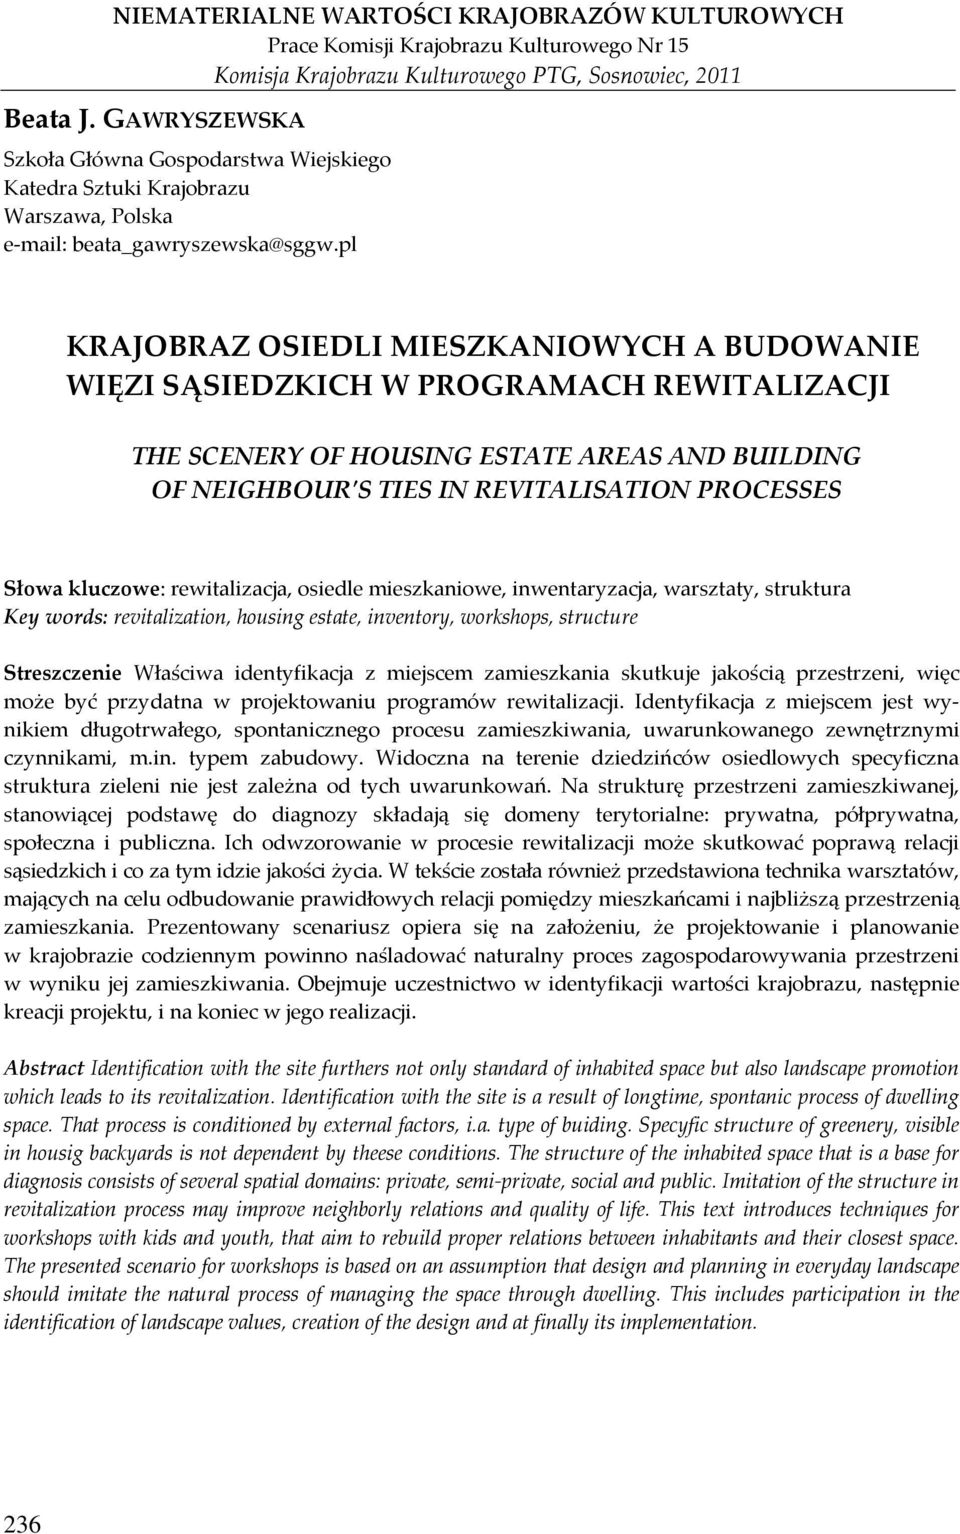 pl KRAJOBRAZ OSIEDLI MIESZKANIOWYCH A BUDOWANIE WIĘZI SĄSIEDZKICH W PROGRAMACH REWITALIZACJI THE SCENERY OF HOUSING ESTATE AREAS AND BUILDING OF NEIGHBOURʹS TIES IN REVITALISATION PROCESSES Słowa